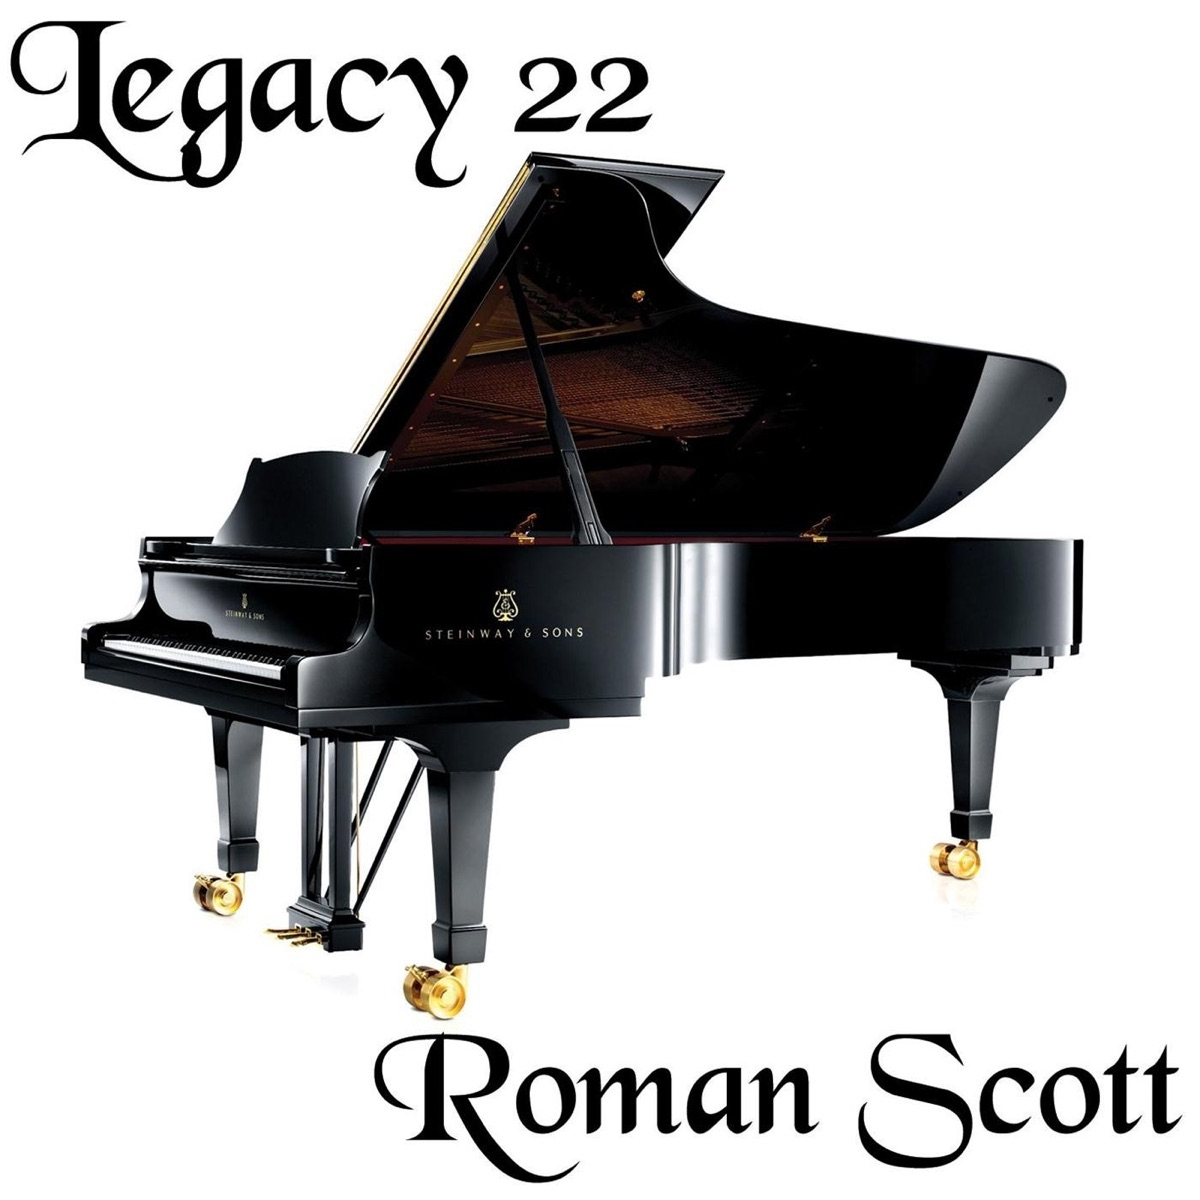 Legacy 22 Roman Scott CD cover